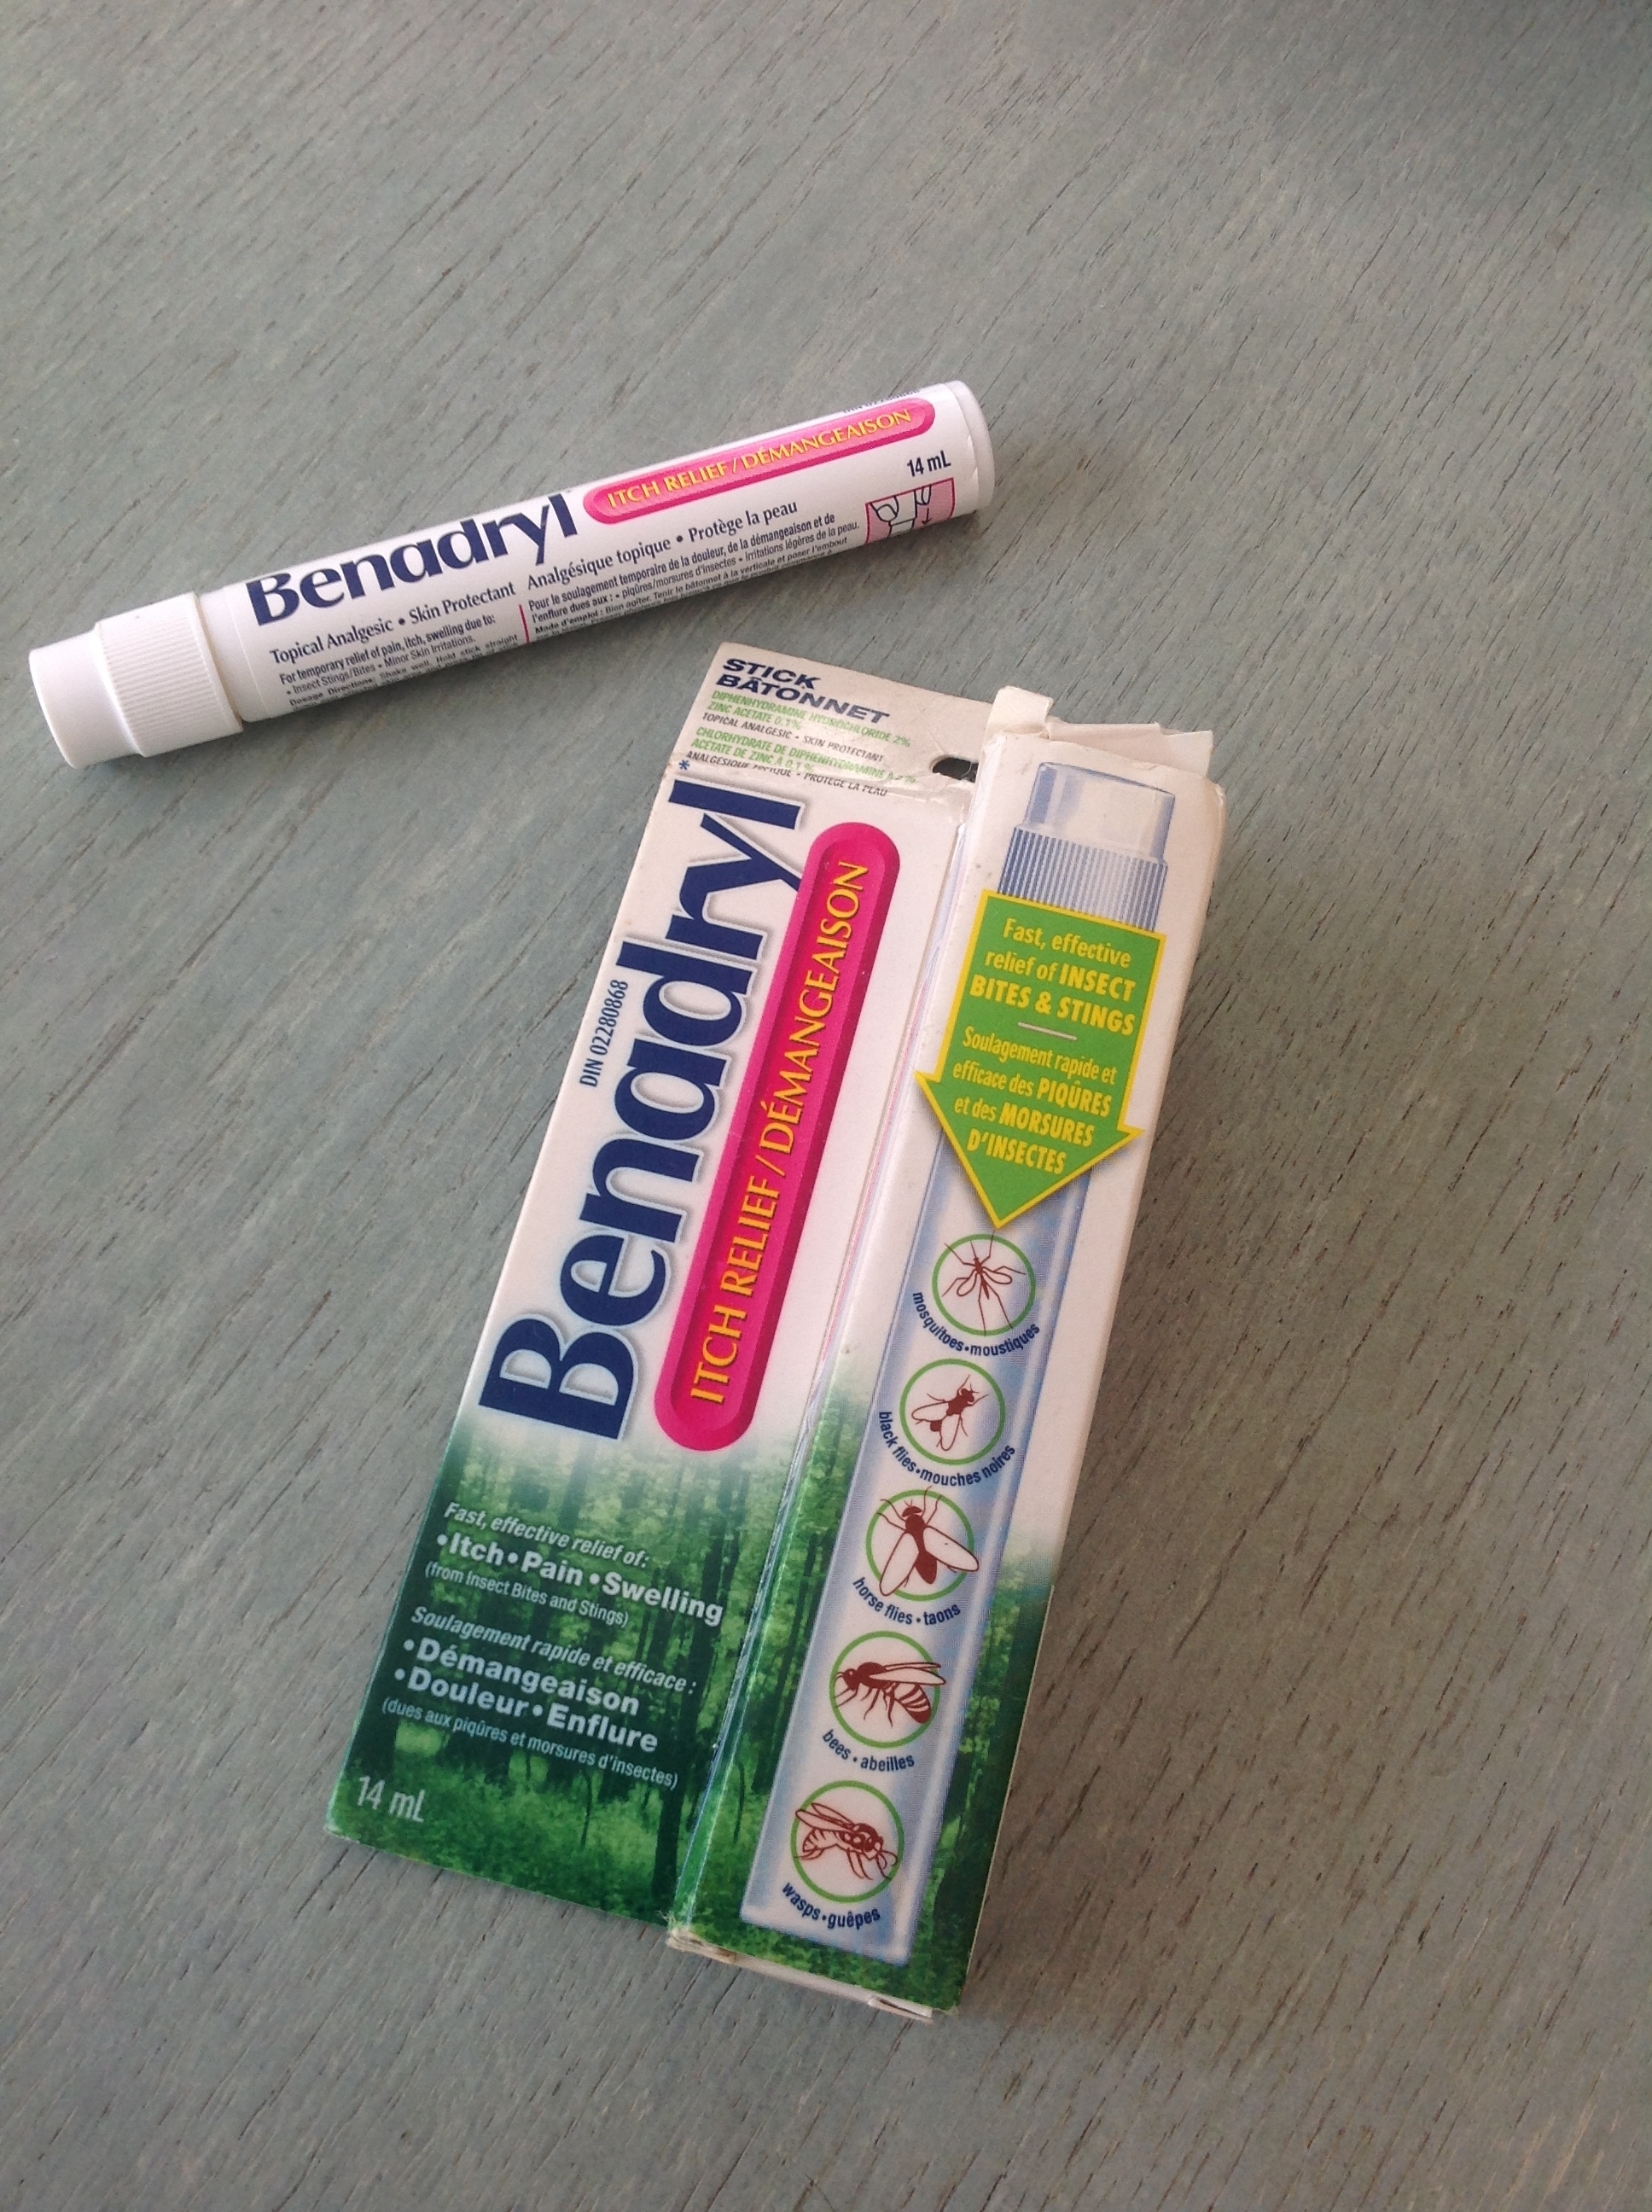 Benadryl Itch Relief Stick Reviews In